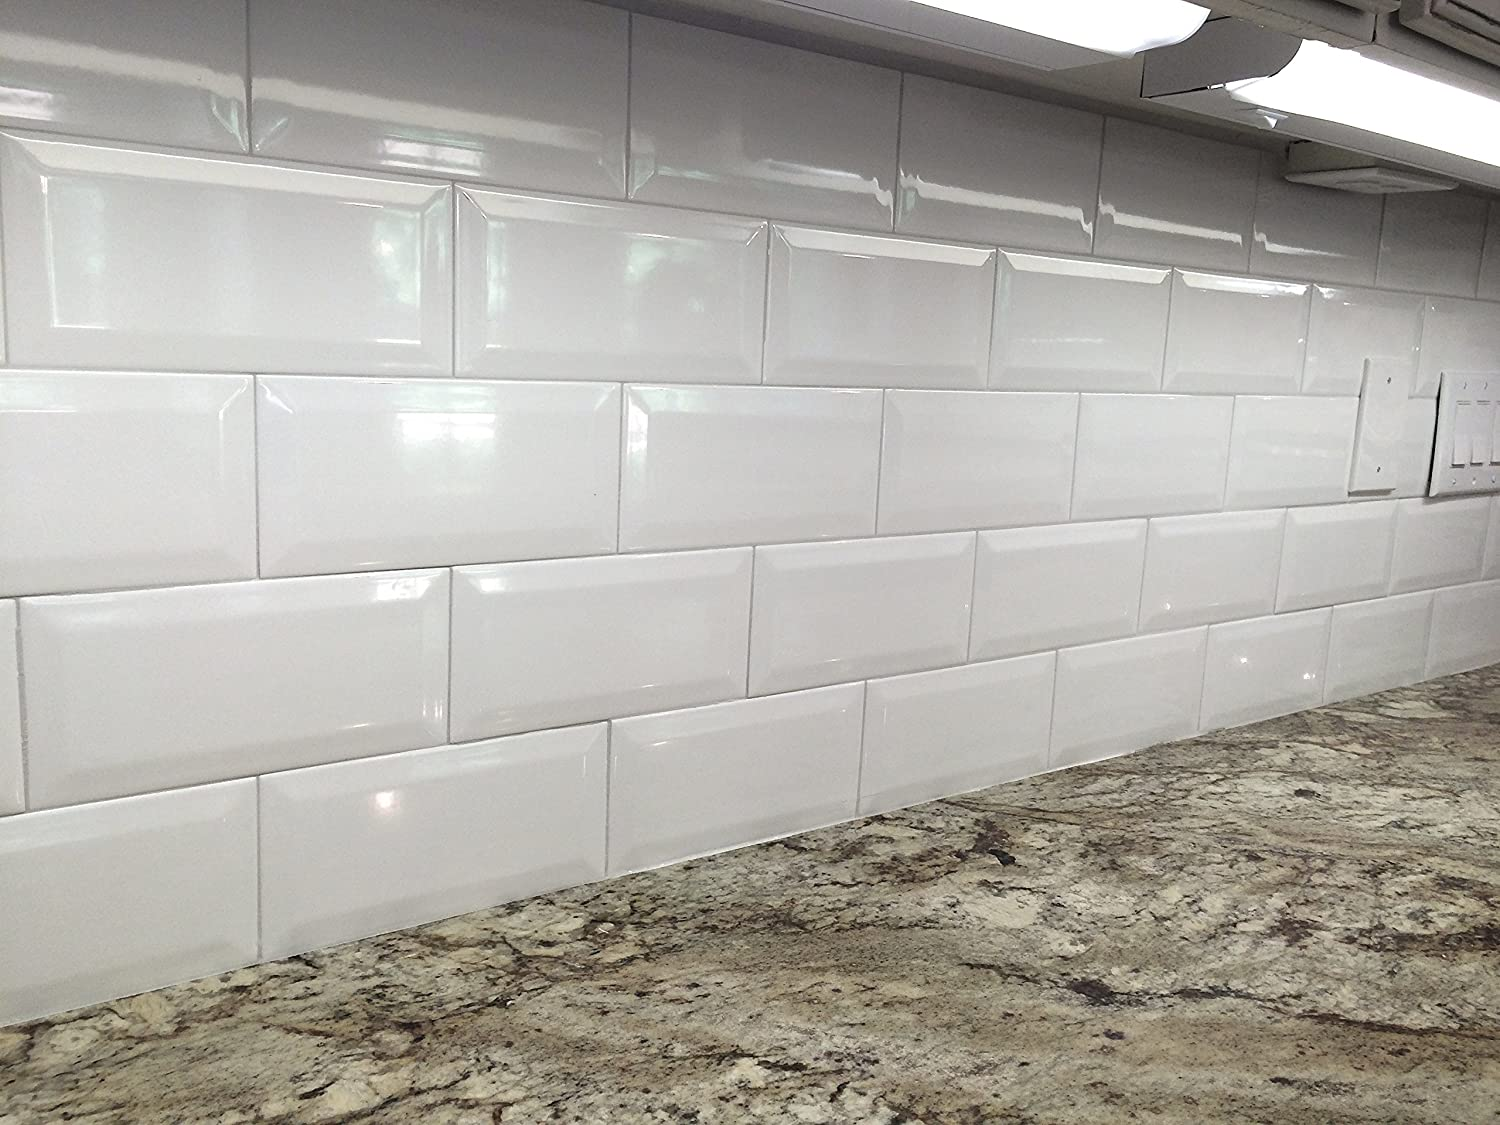 4x8 soft white wide beveled subway ceramic tile backsplashes walls 4x8 soft white wide beveled subway ceramic tile backsplashes walls kitchen shower amazon dailygadgetfo Gallery